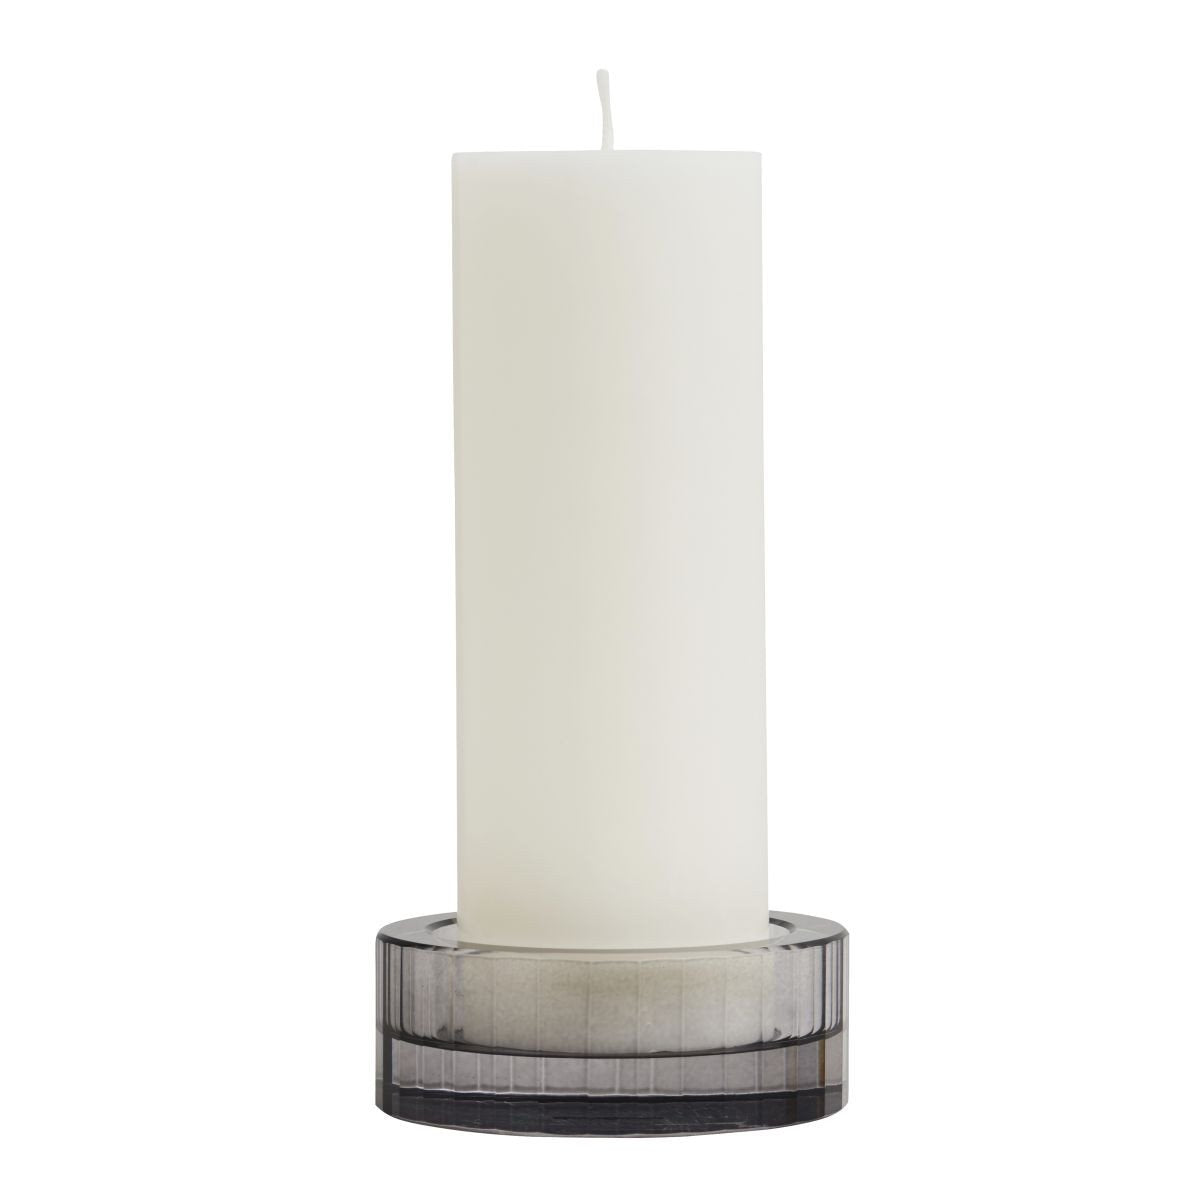 XL Nordic Candleholder in Smoked design by OYOY